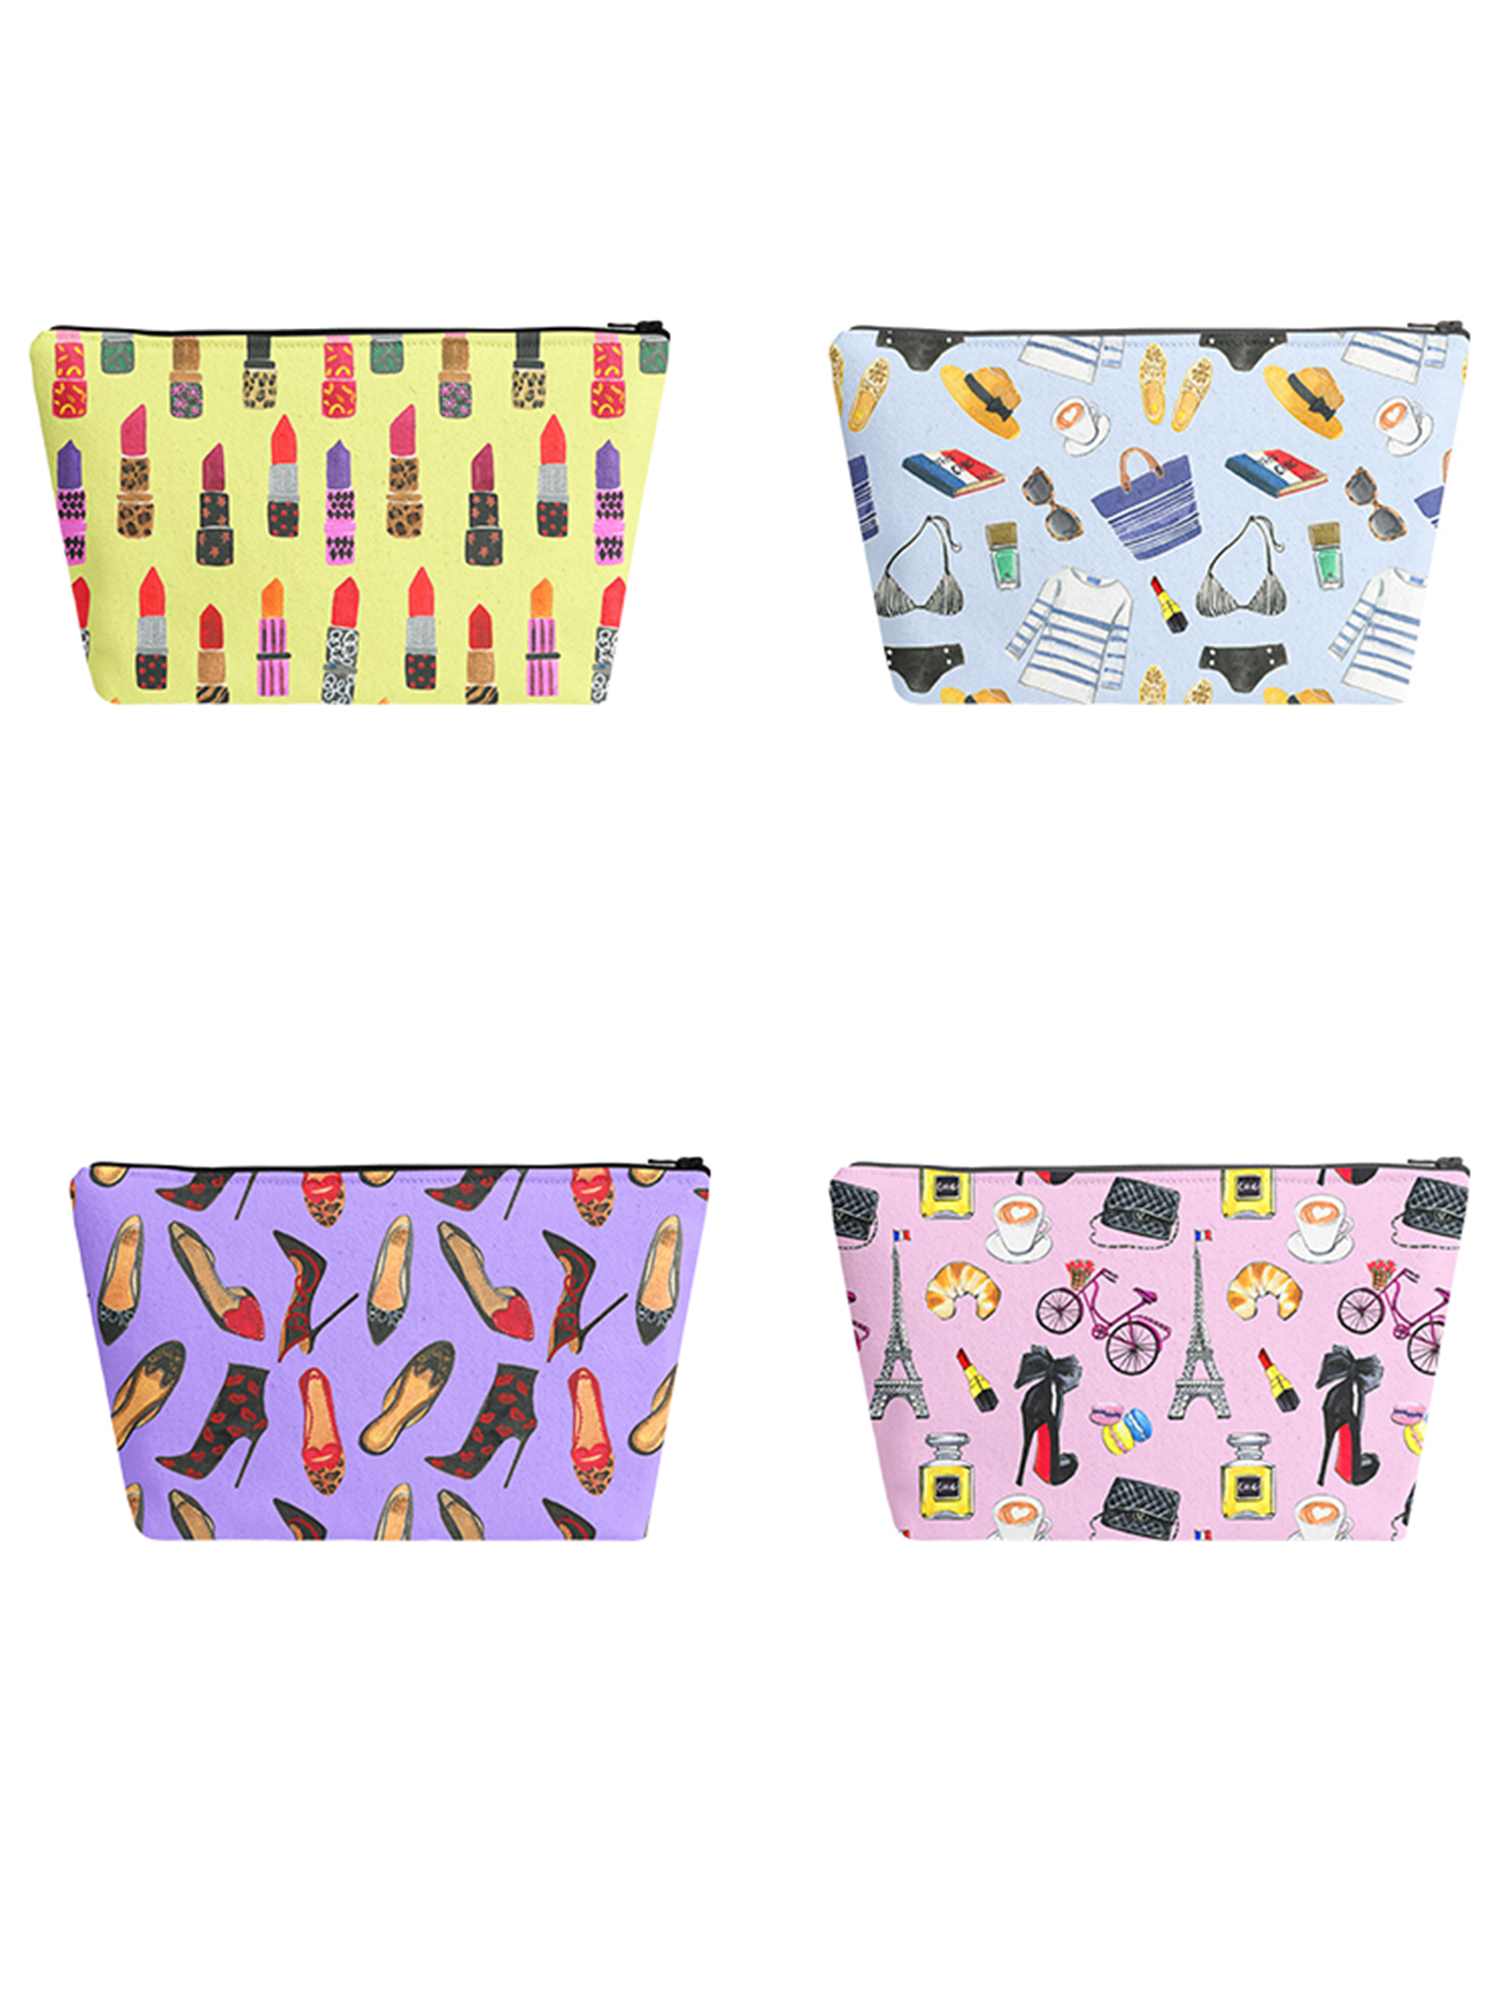 fashionable pattern for makeup pouches by rongrong devoe.jpg